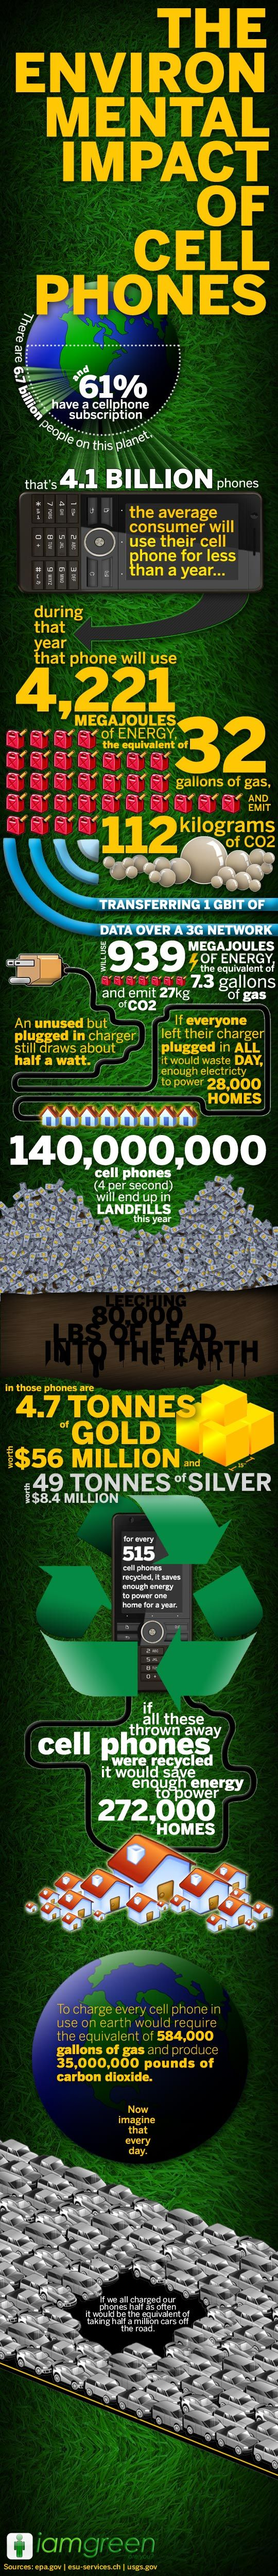 With nearly everyone having a cell phone these days, we thought it a good idea to educate people on the true environmental impact that the world's growing addiction to mobile phones is creating